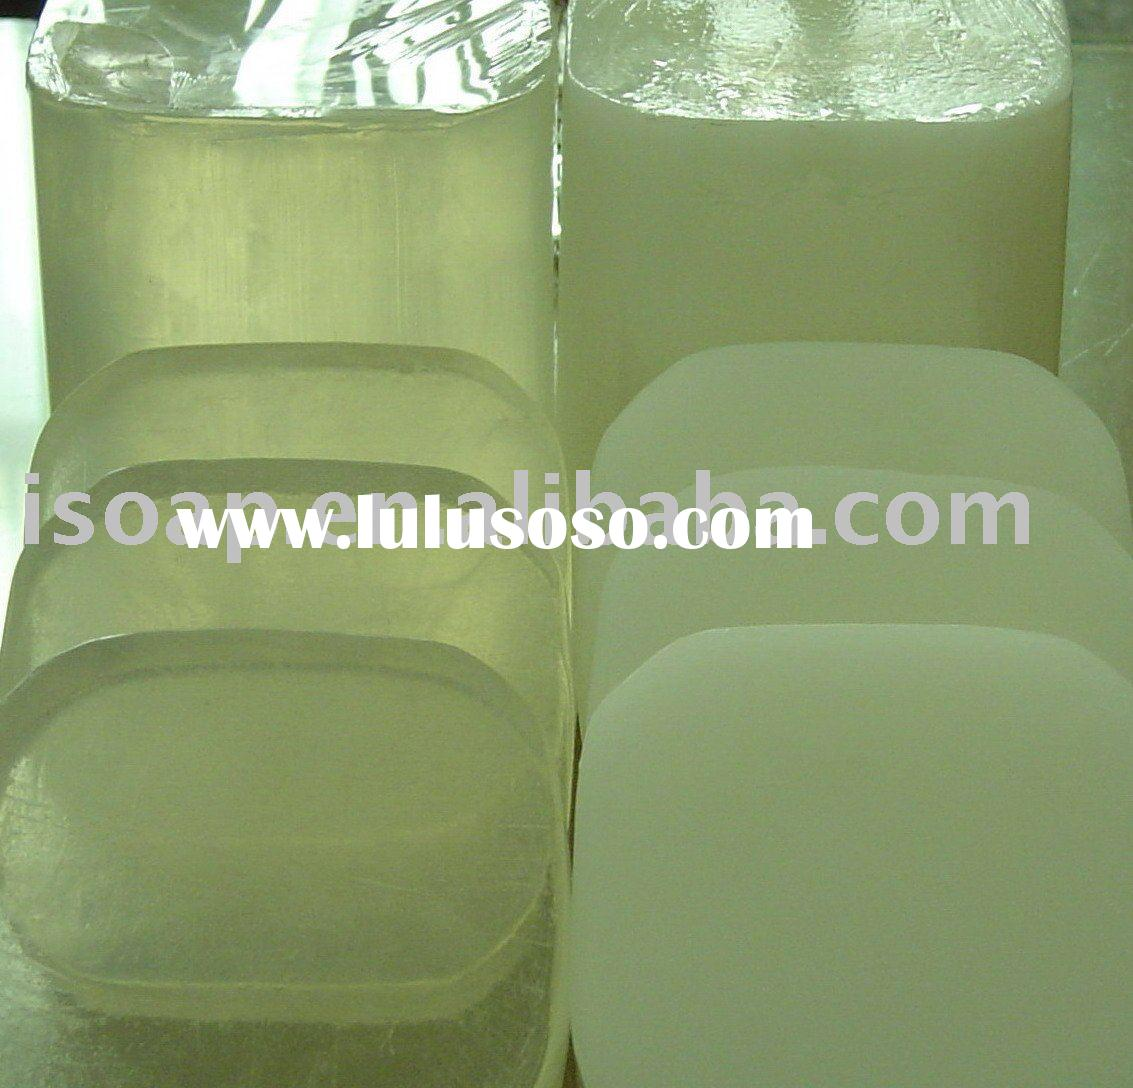 glycerin soap base/MP soap base/soap making base/transparent soap base